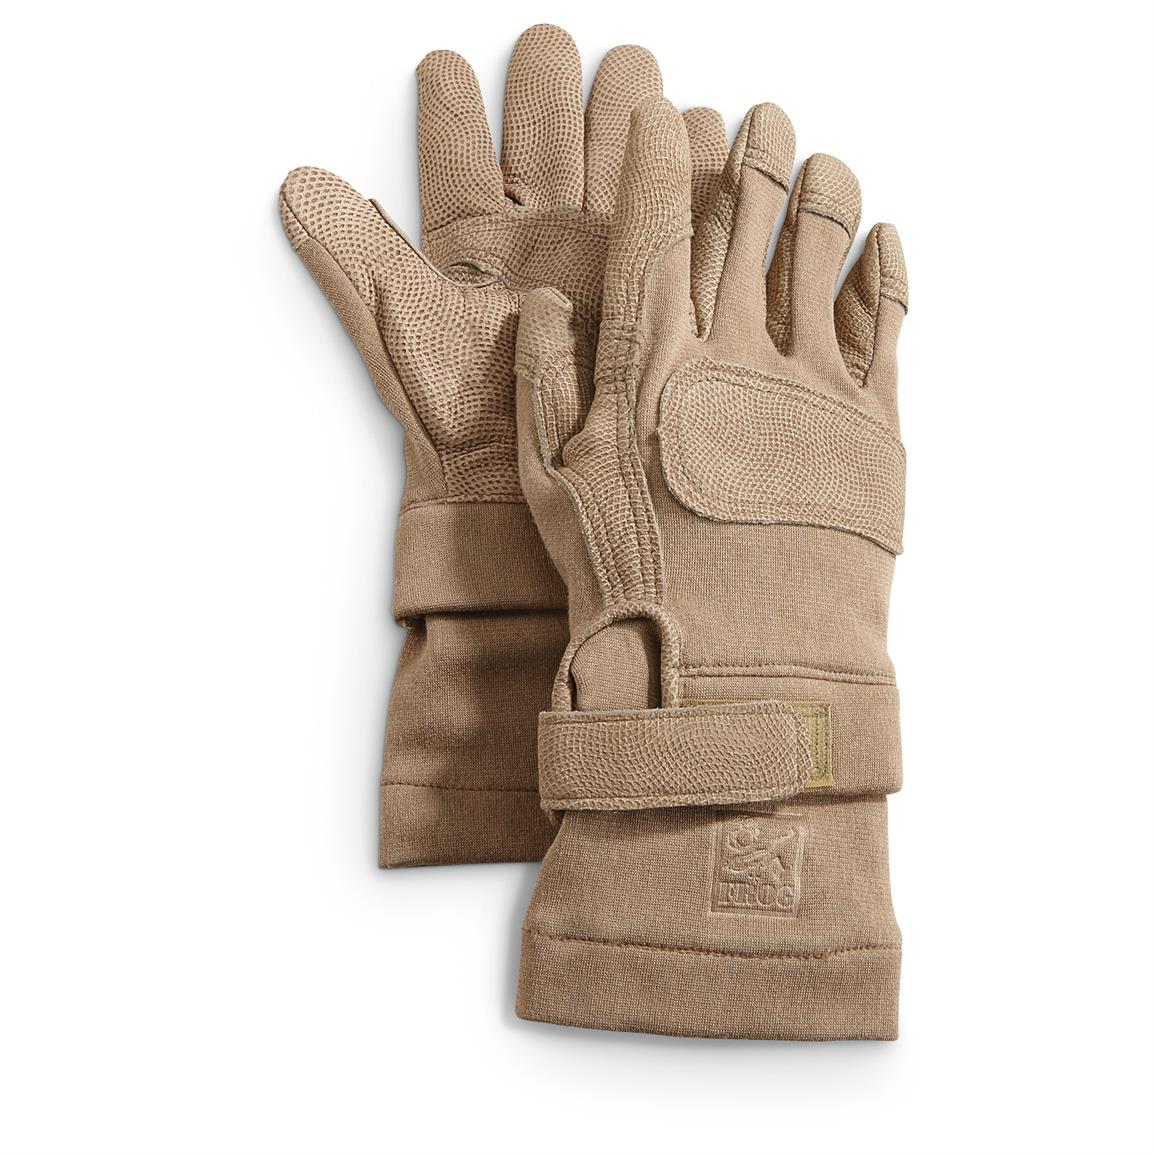 U.S. Military Surplus FROG Leather/Aramid Gloves, New